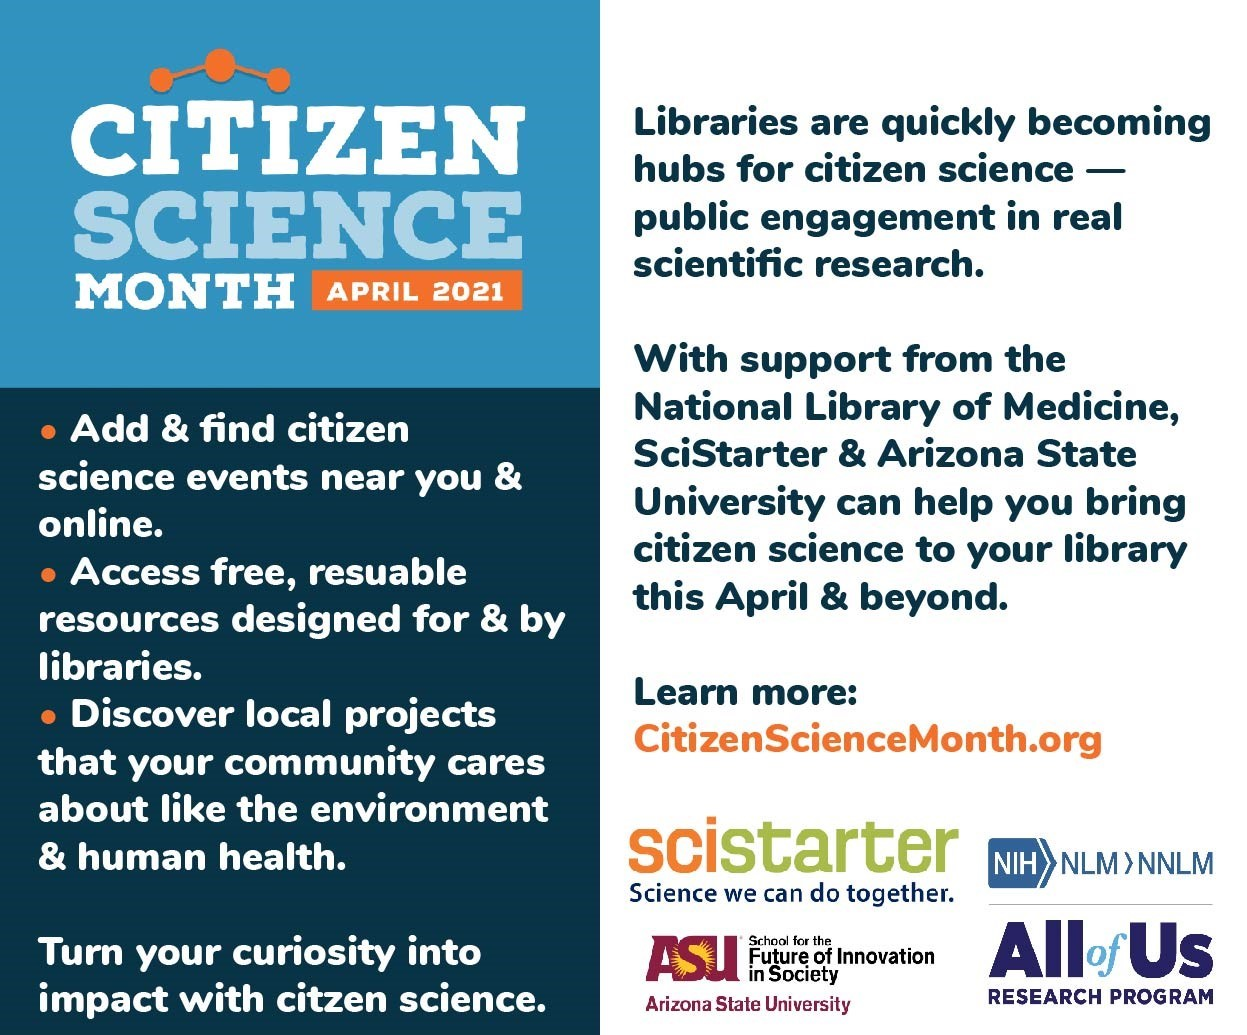 Advertisement for Citizen Science Month April 2021